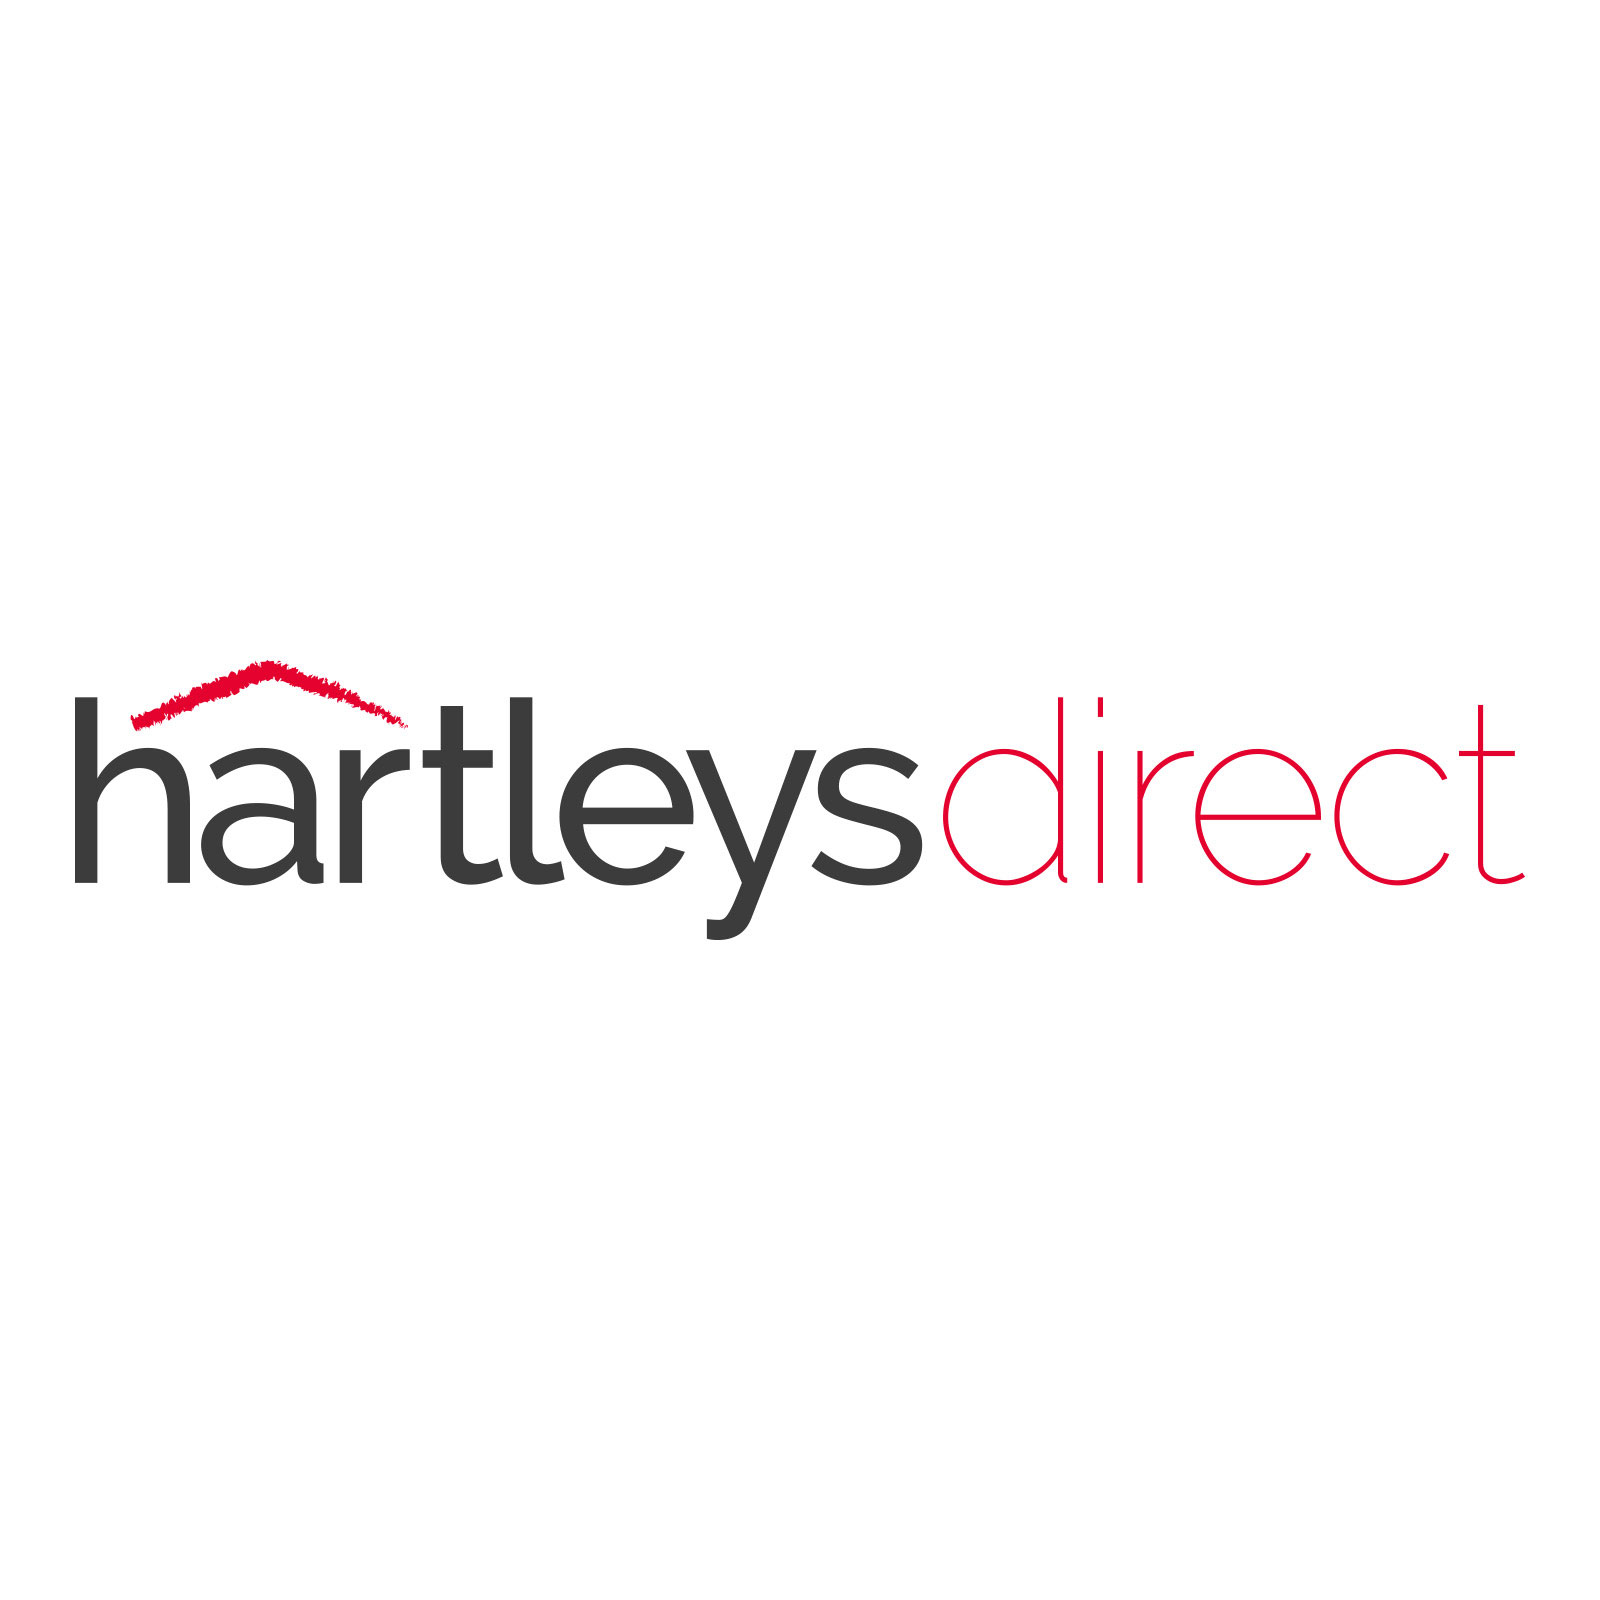 Hartleys-2x2-Seagrass-Unit-on-White-Background.jpg